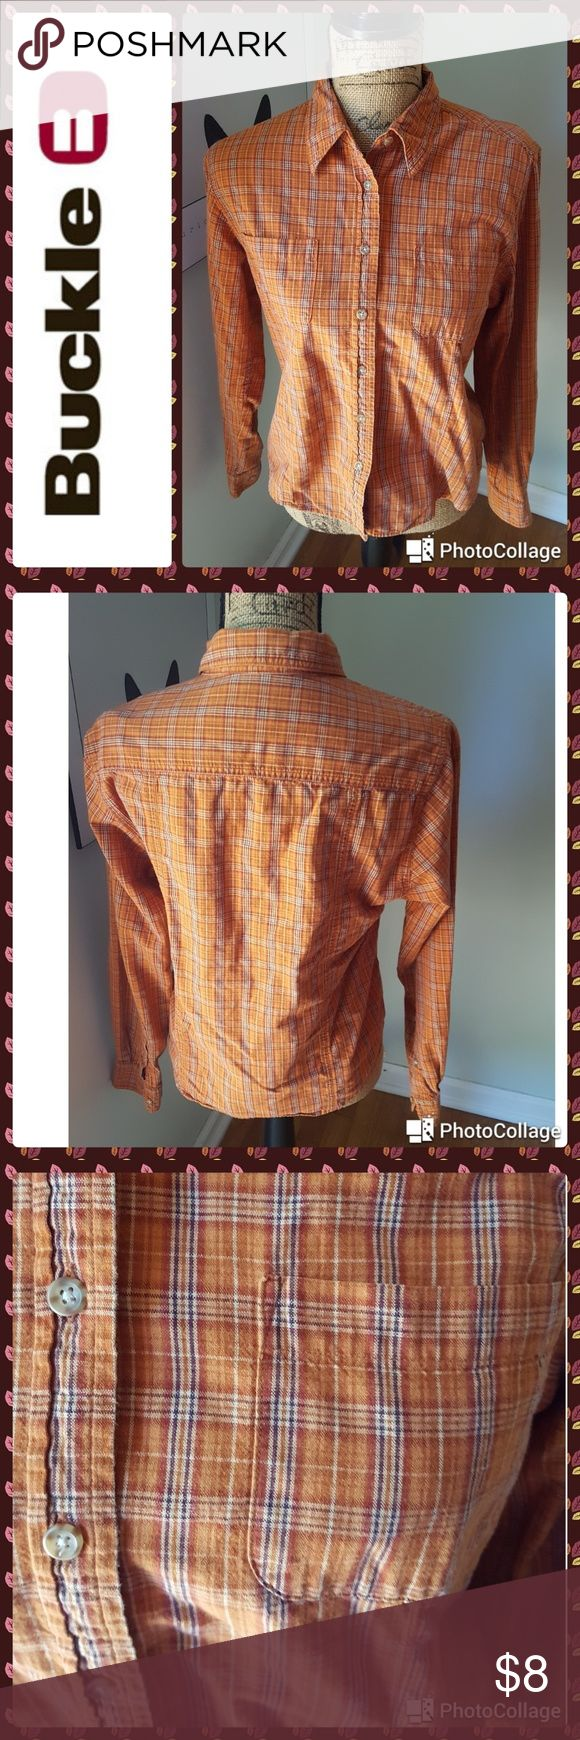 """Buckle shirt In great condition.  Buckle shirt. Button down front style.  Orange rust plaid with patch pockets. Long sleeves with button cuffs.  Bust 38"""". Buckle Tops Button Down Shirts"""